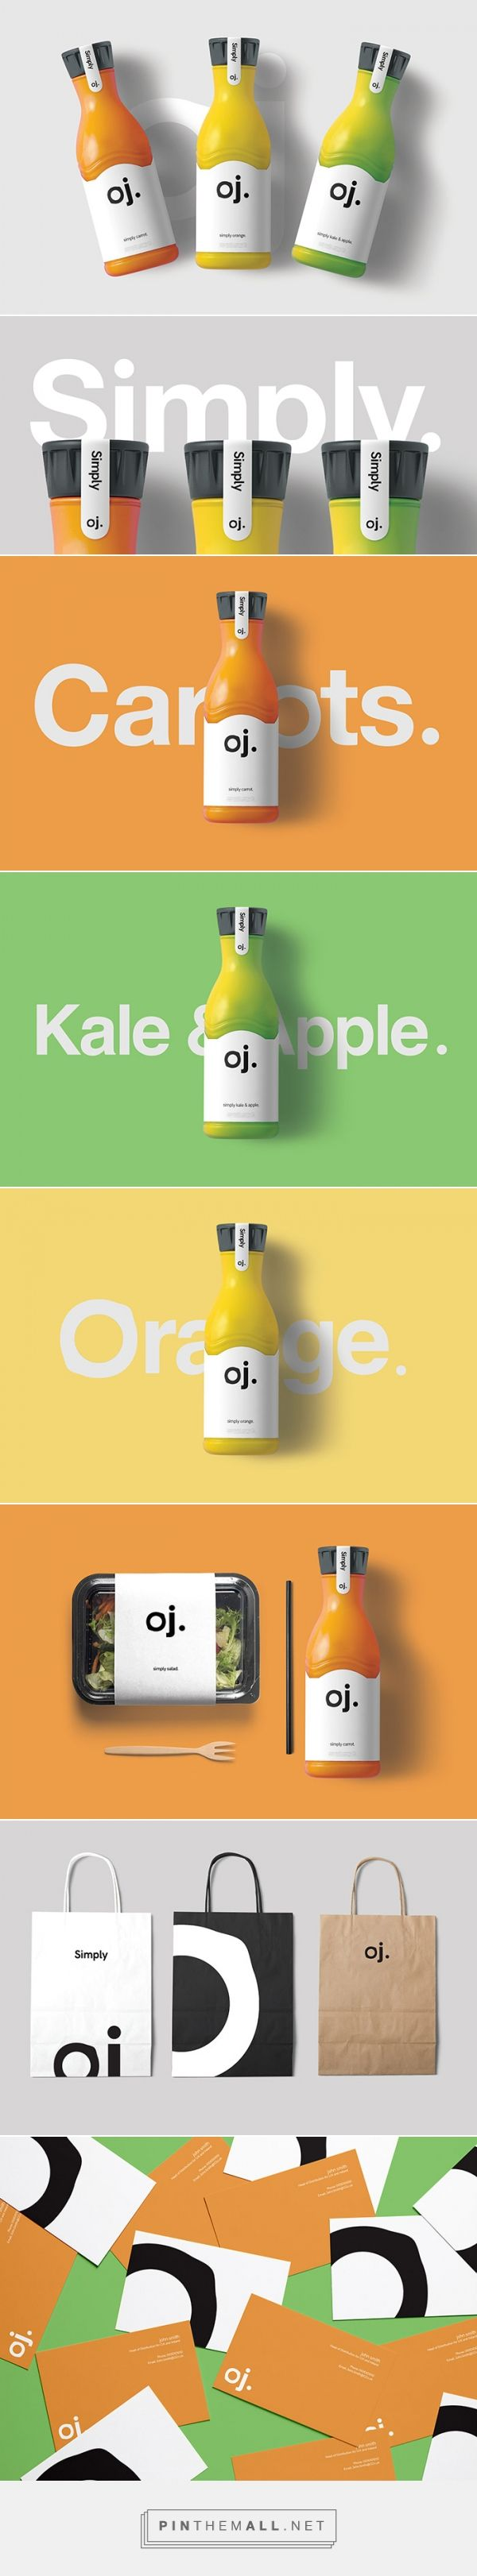 Oj. natural juice company by AA_Design Studio. Source: Daily Package Design Inspiration. Pin curated by #SFields99 #packaging #design #inspiration #ideas #branding #juices #fruit